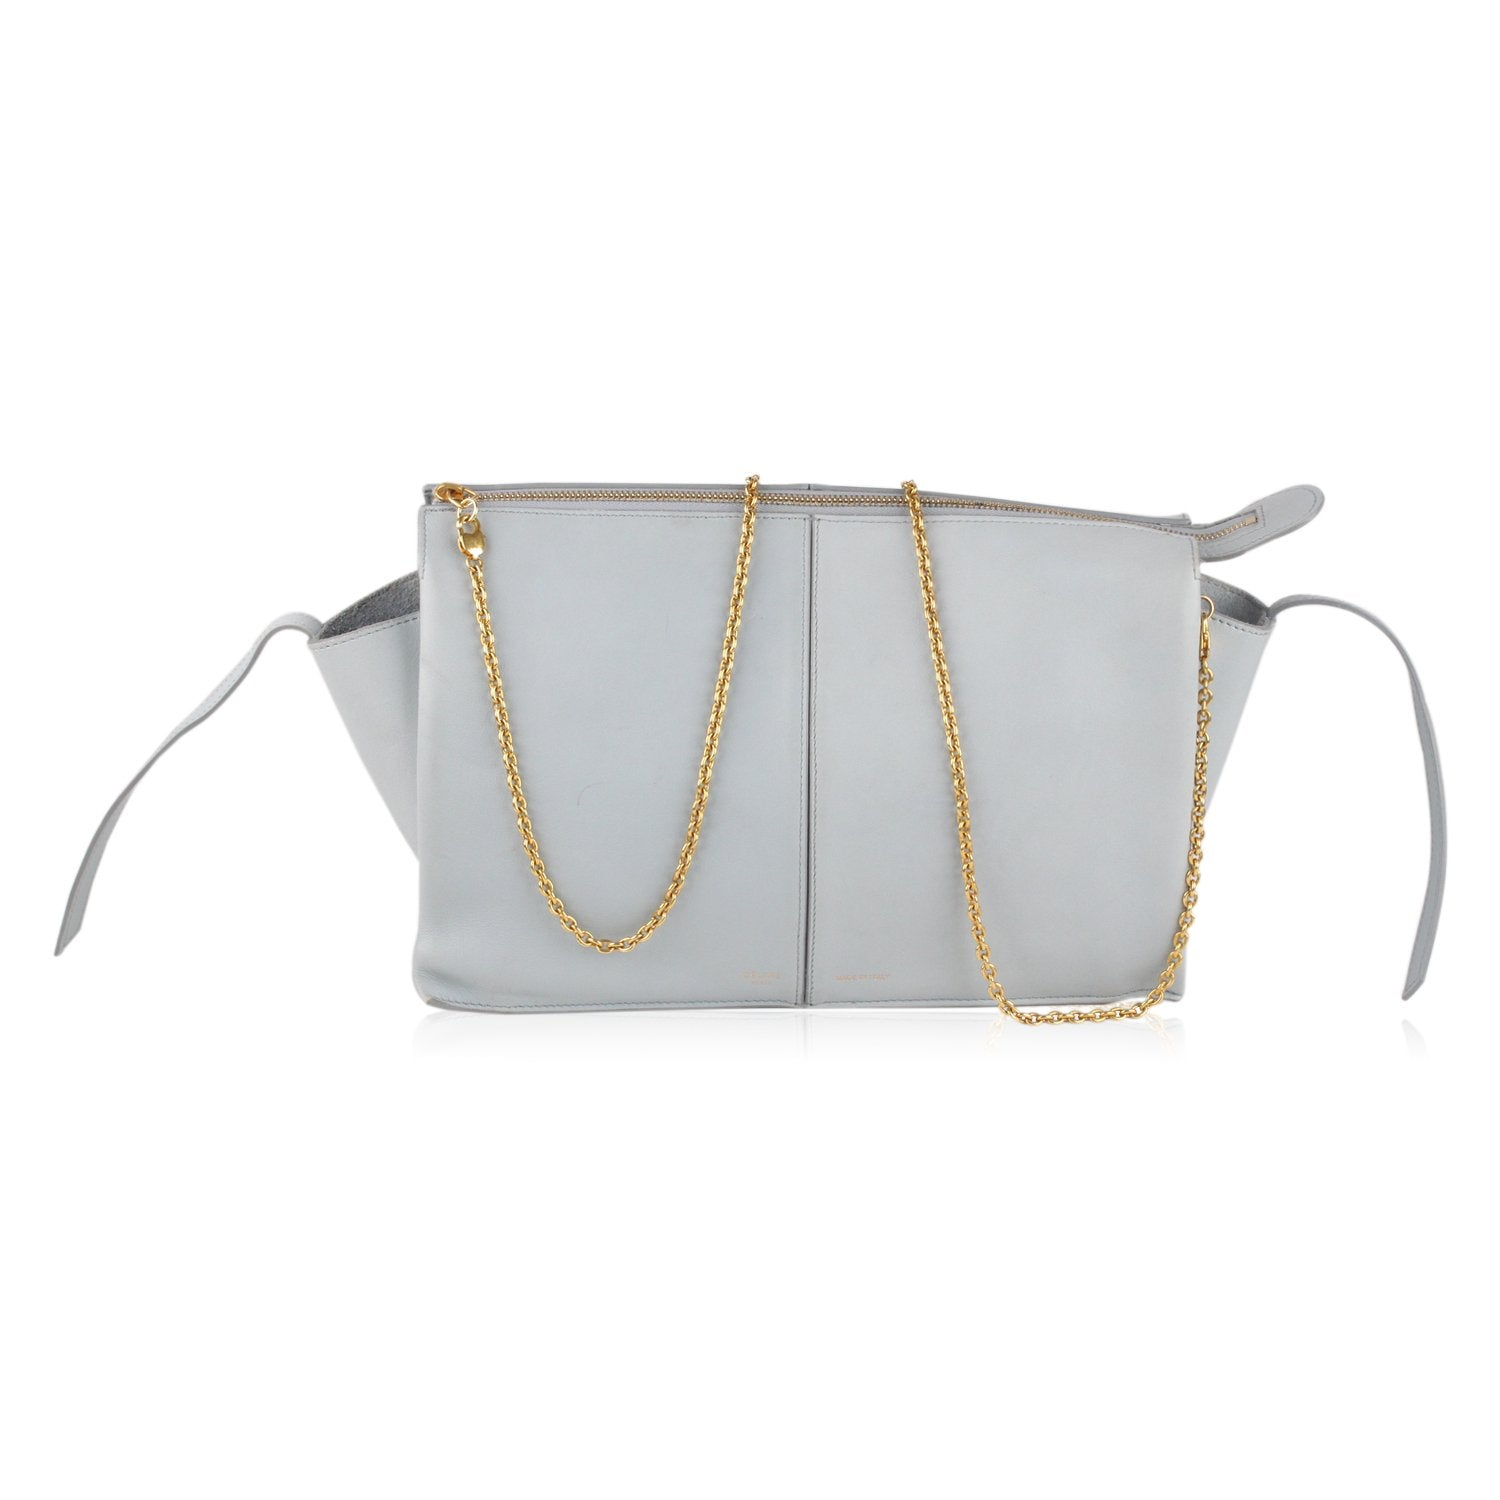 94af72d18 Enjoy Celine Trifold Clutch on Chain Shoulder Bag at OPHERTYCIOCCI –  OPHERTY & CIOCCI